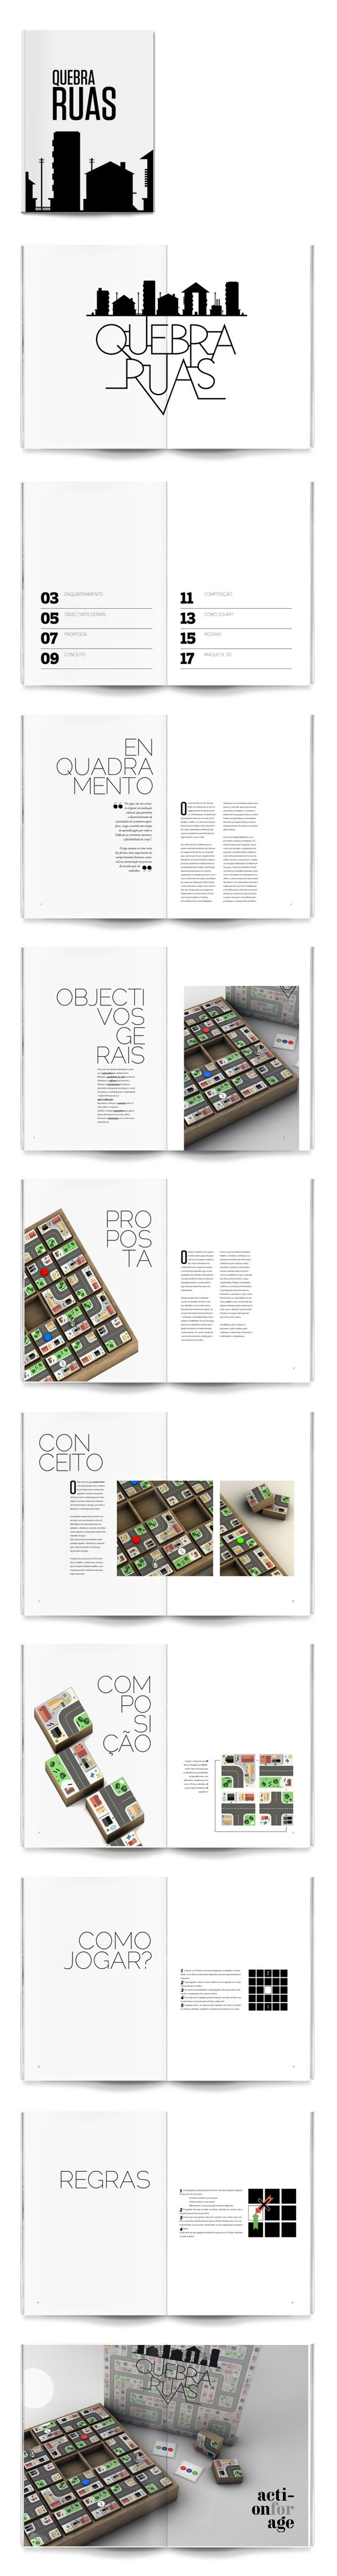 QUEBRA RUAS | #stationary #corporate #design #corporatedesign #identity #branding #marketing < repinned by www.BlickeDeeler.de | Take a look at www.LogoGestaltun...